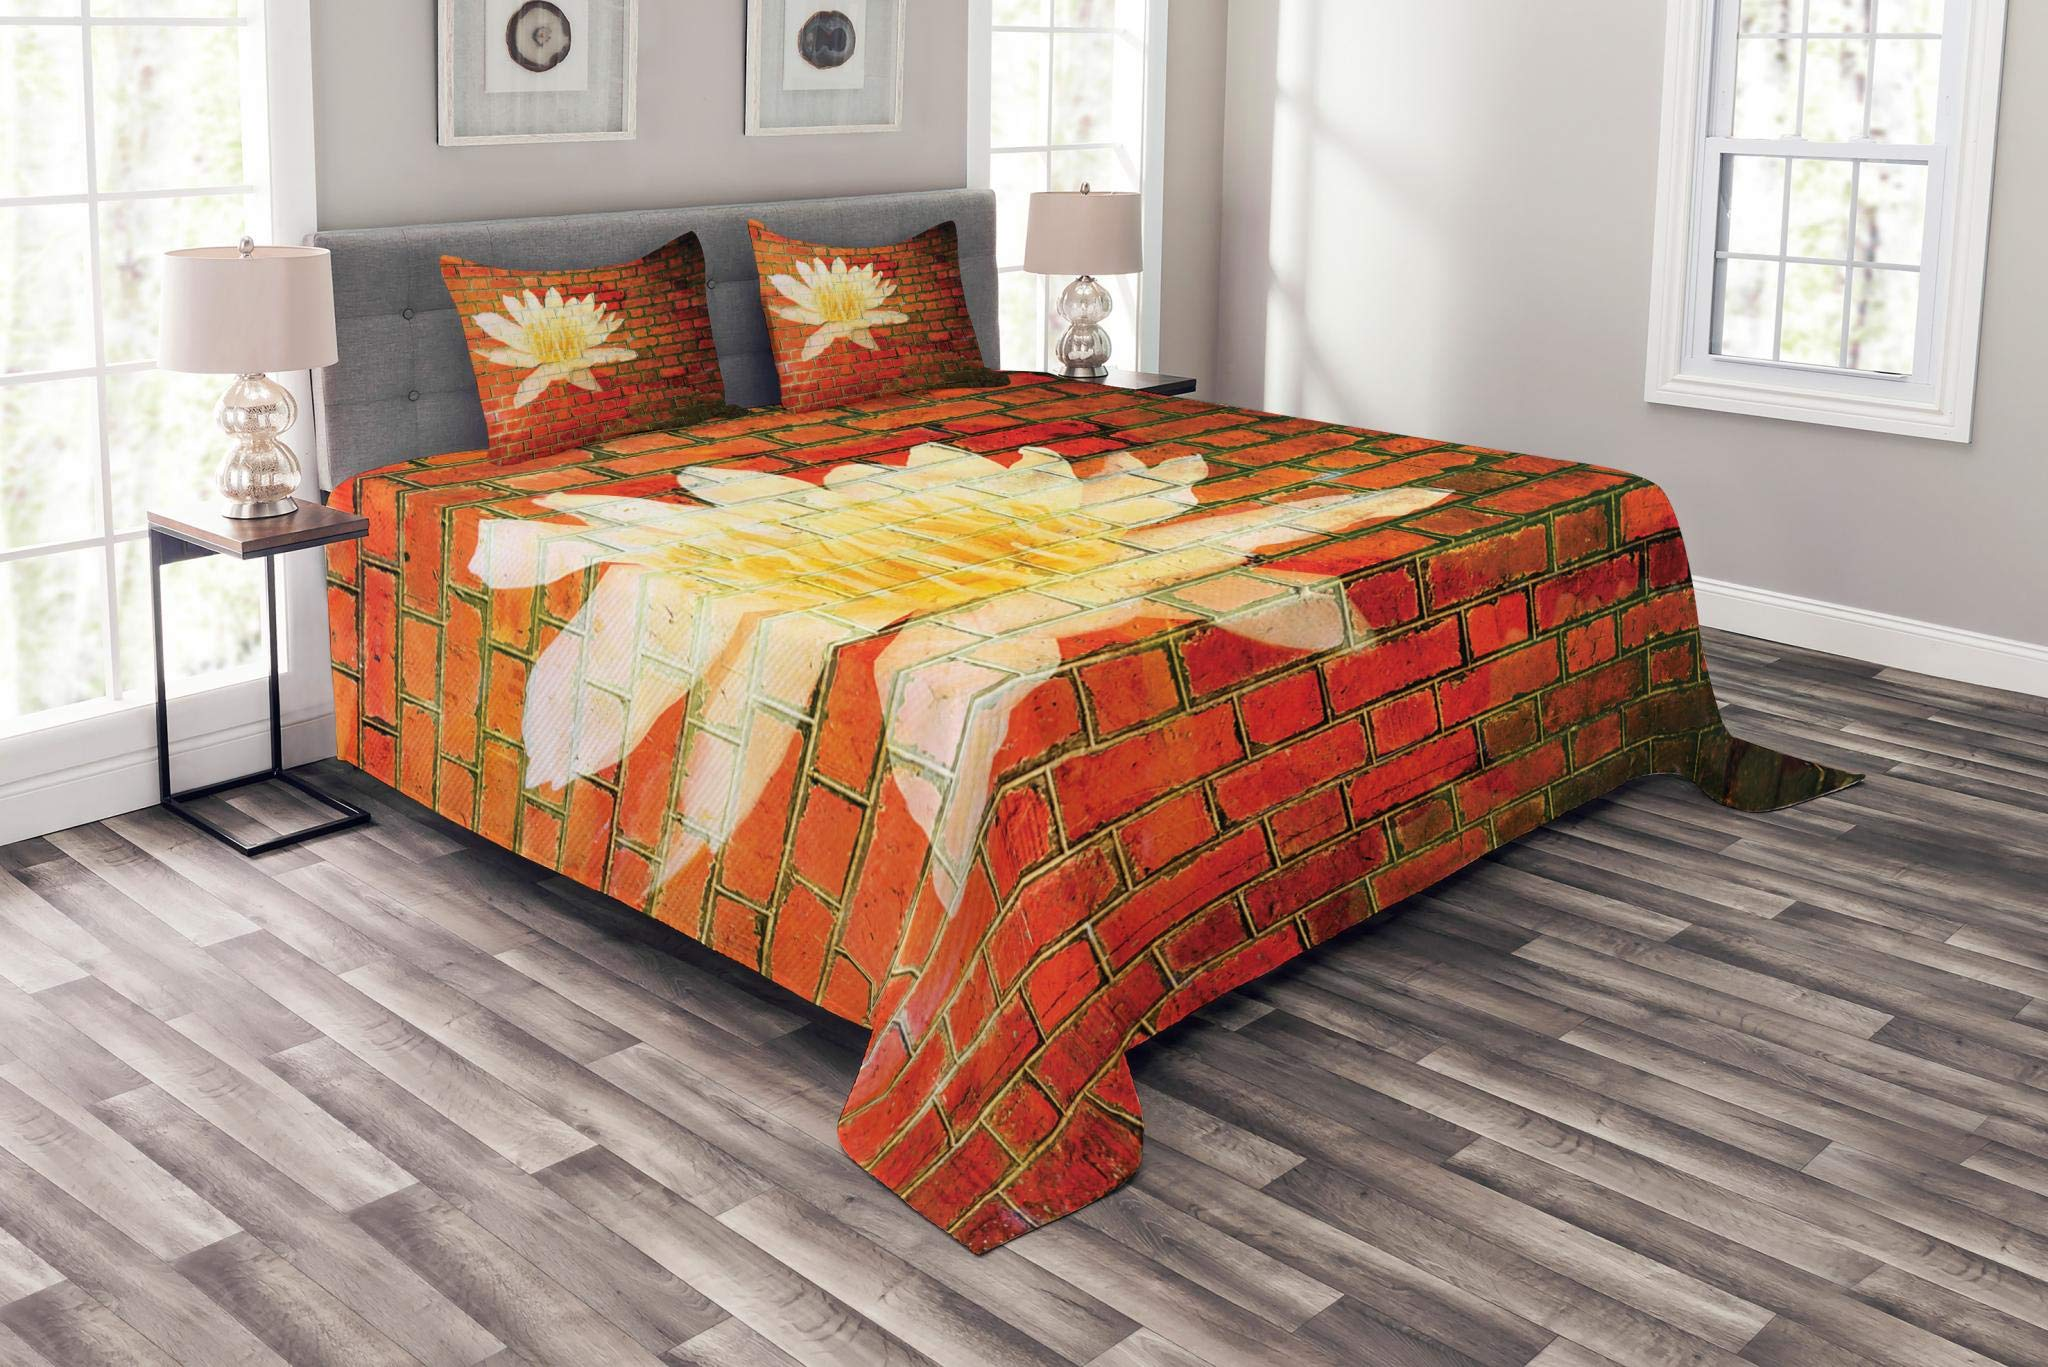 Lunarable Brick Wall Bedspread Set King Size, Lotus Flower on Grunge Red Brick Wall Floral Ornamental and Modern Pattern, Decorative Quilted 3 Piece Coverlet Set with 2 Pillow Shams, Yellow White